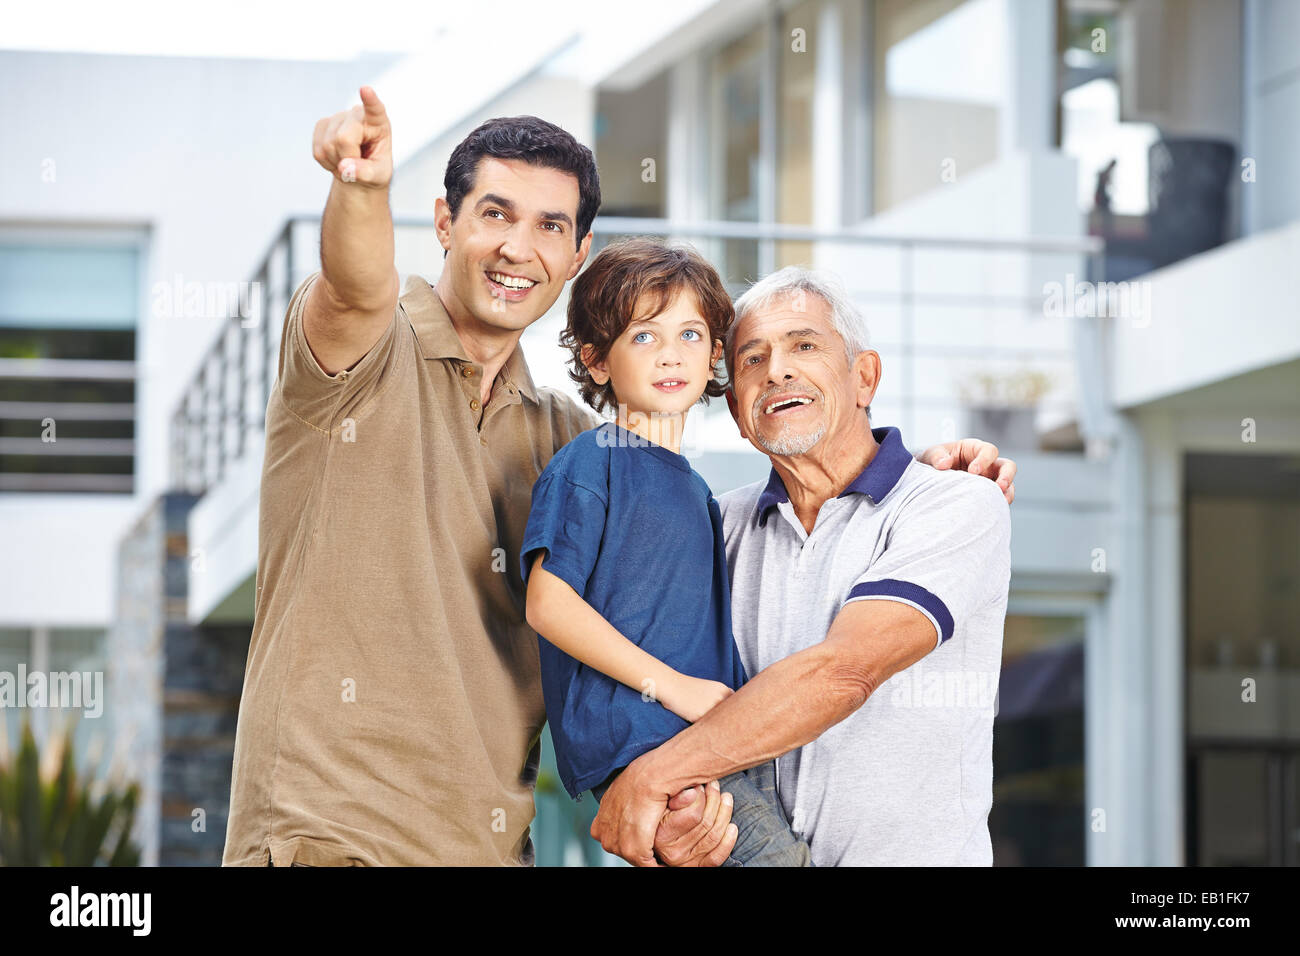 Father of family with son and grandfather showing future goal - Stock Image